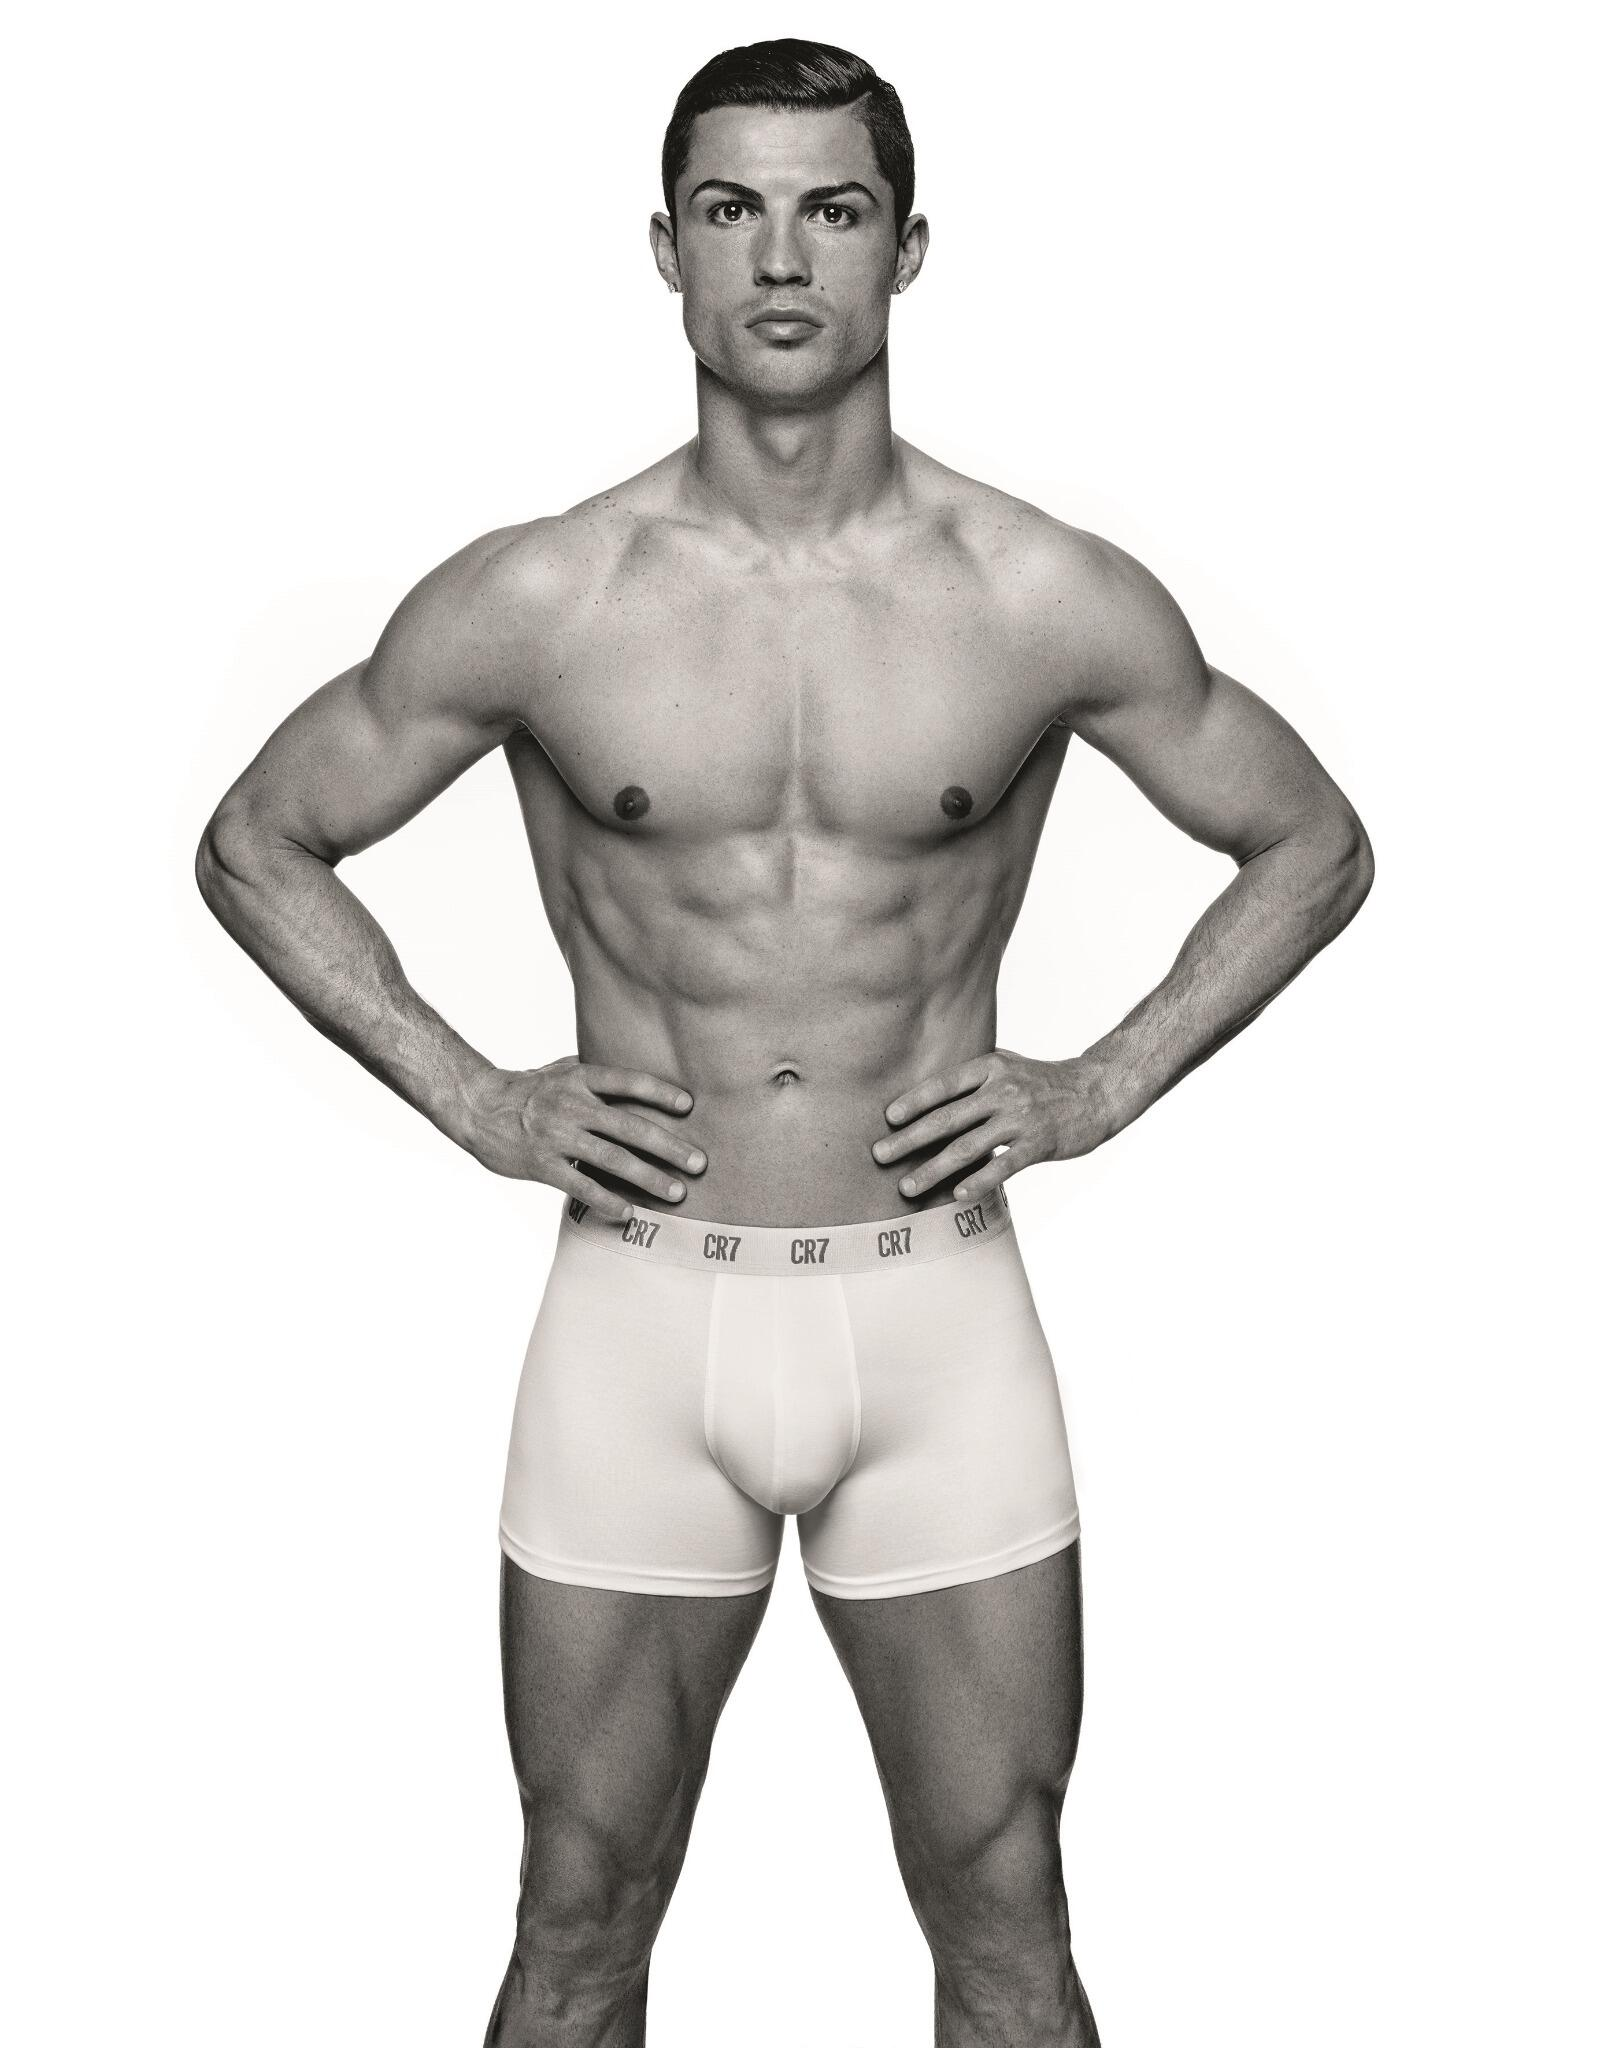 RT @Cristiano: Have you entered my #CR7underwear competition yet? Make sure to visit http://t.co/4t8GFRr7Kh to win some pieces. http://t.co?